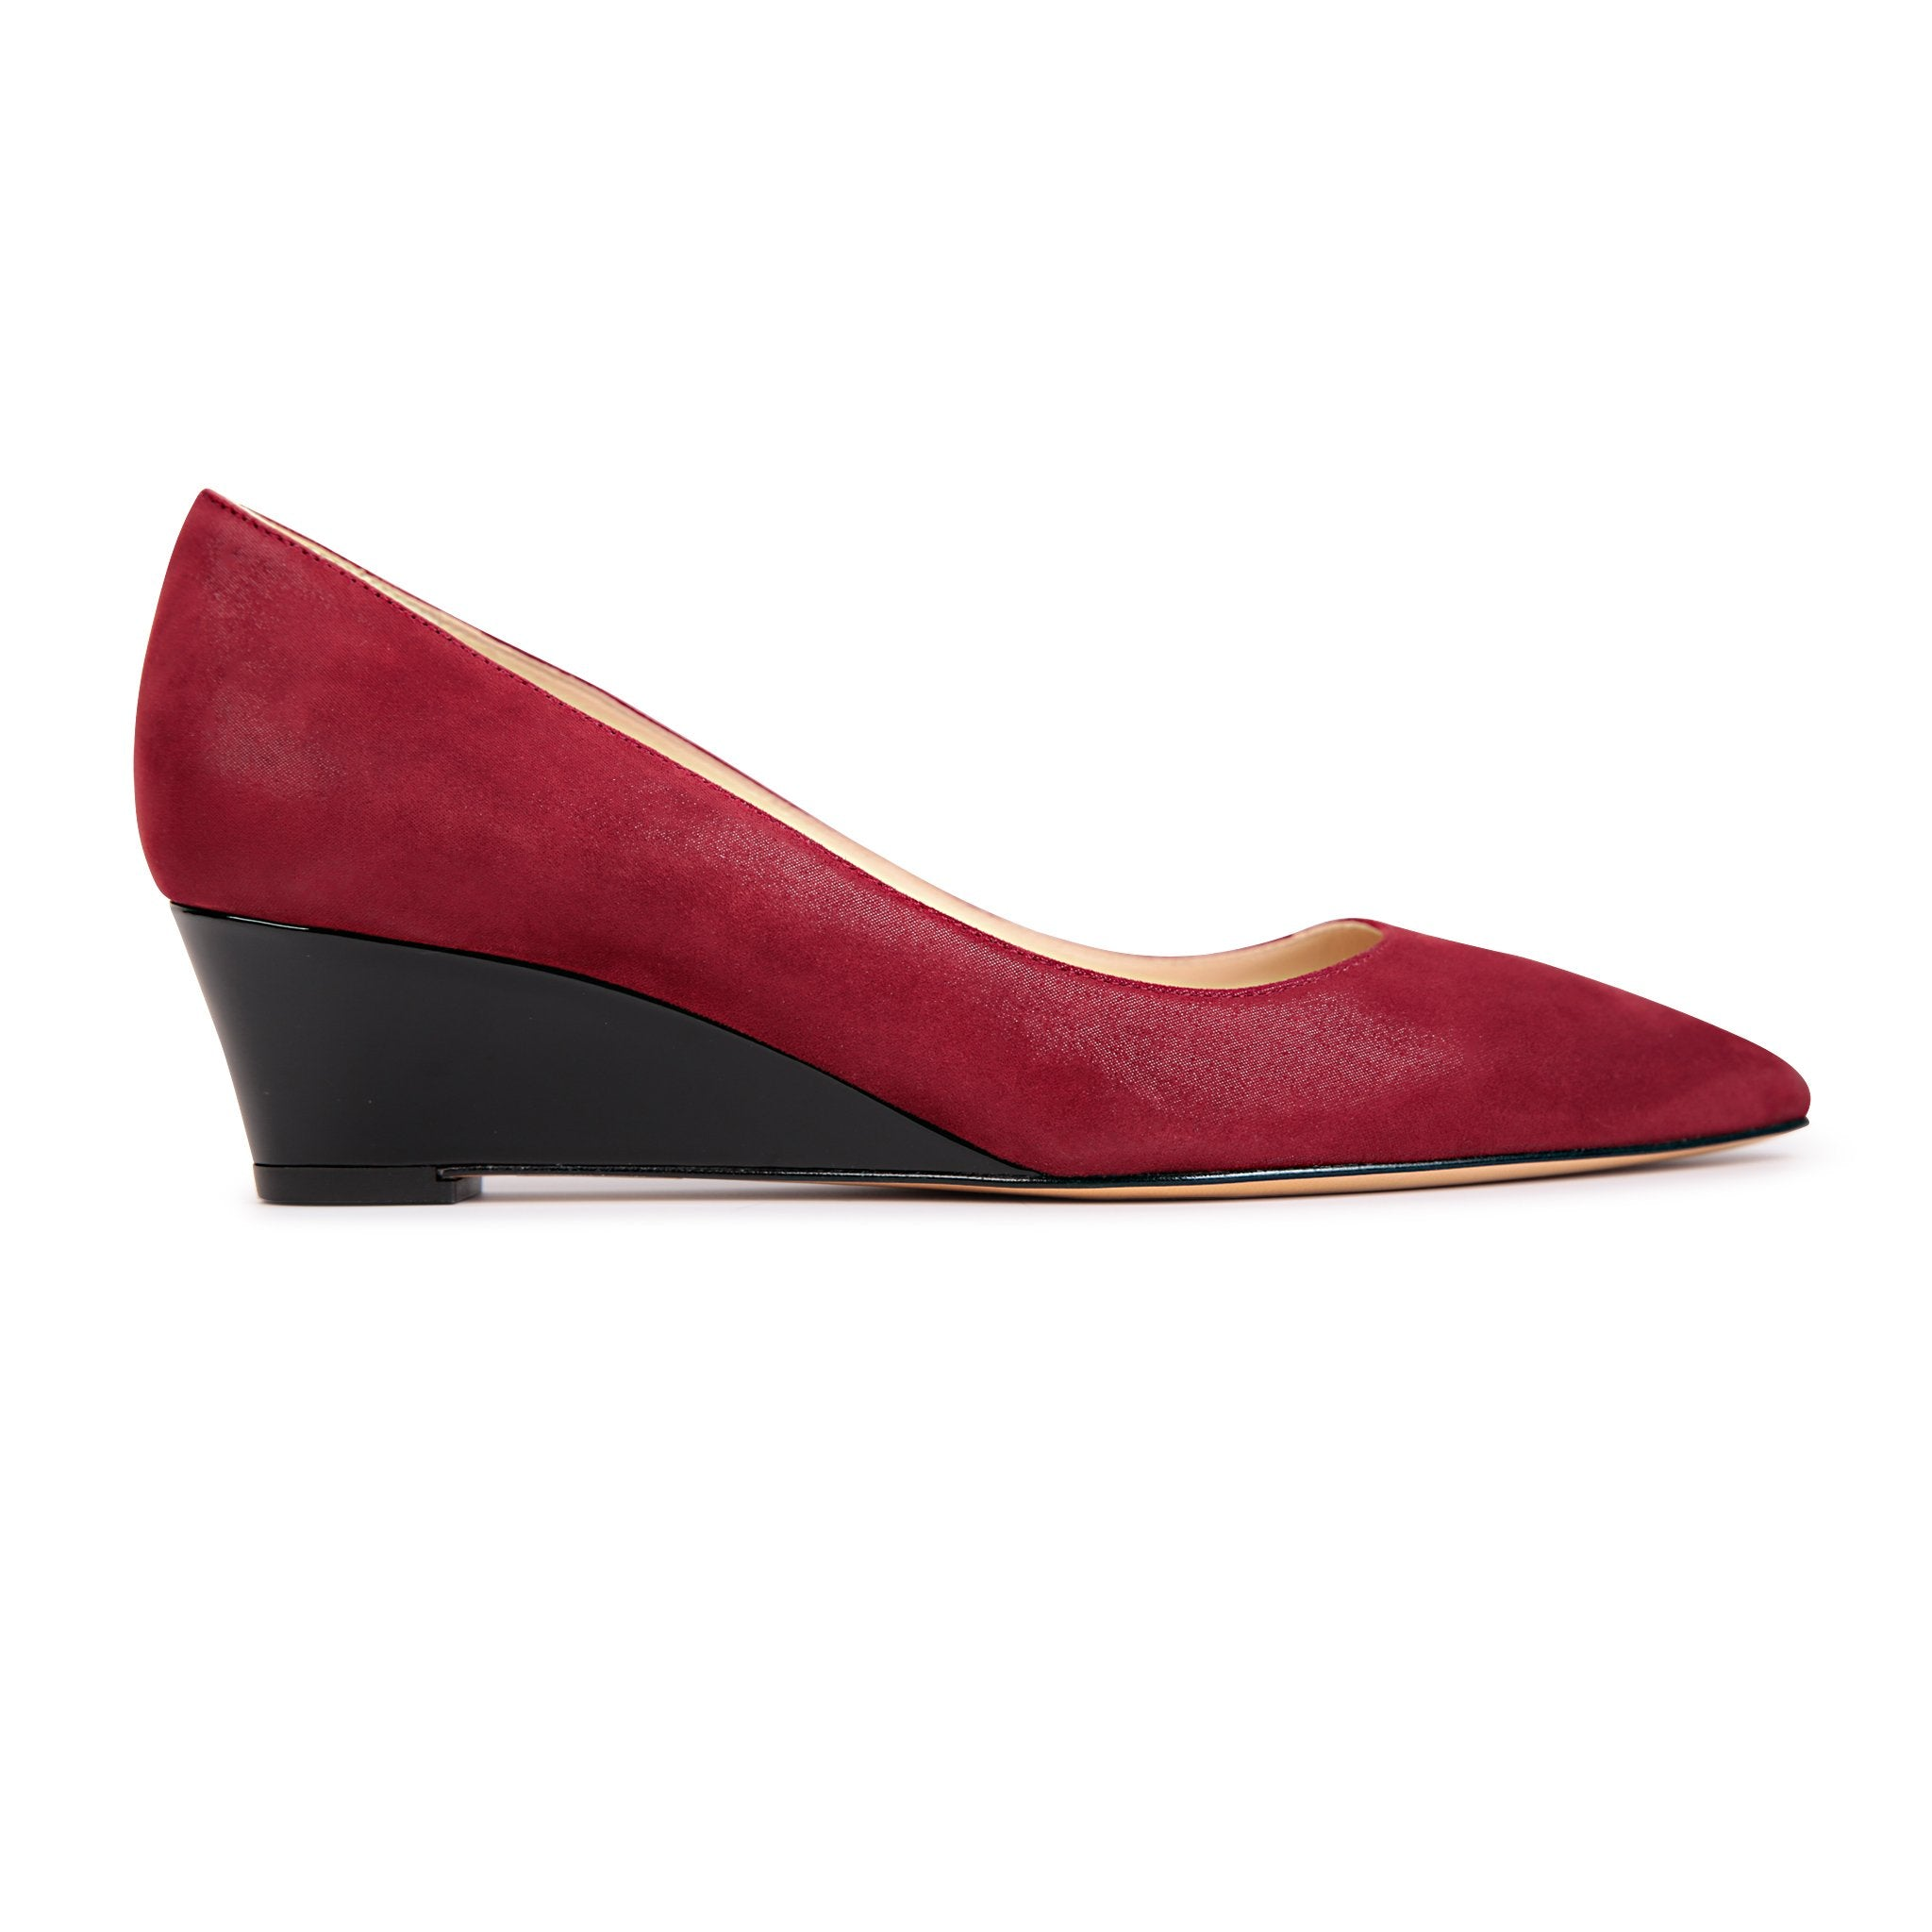 TRENTO - Hydra Bordeaux + Patent Nero, VIAJIYU - Women's Hand Made Sustainable Luxury Shoes. Made in Italy. Made to Order.